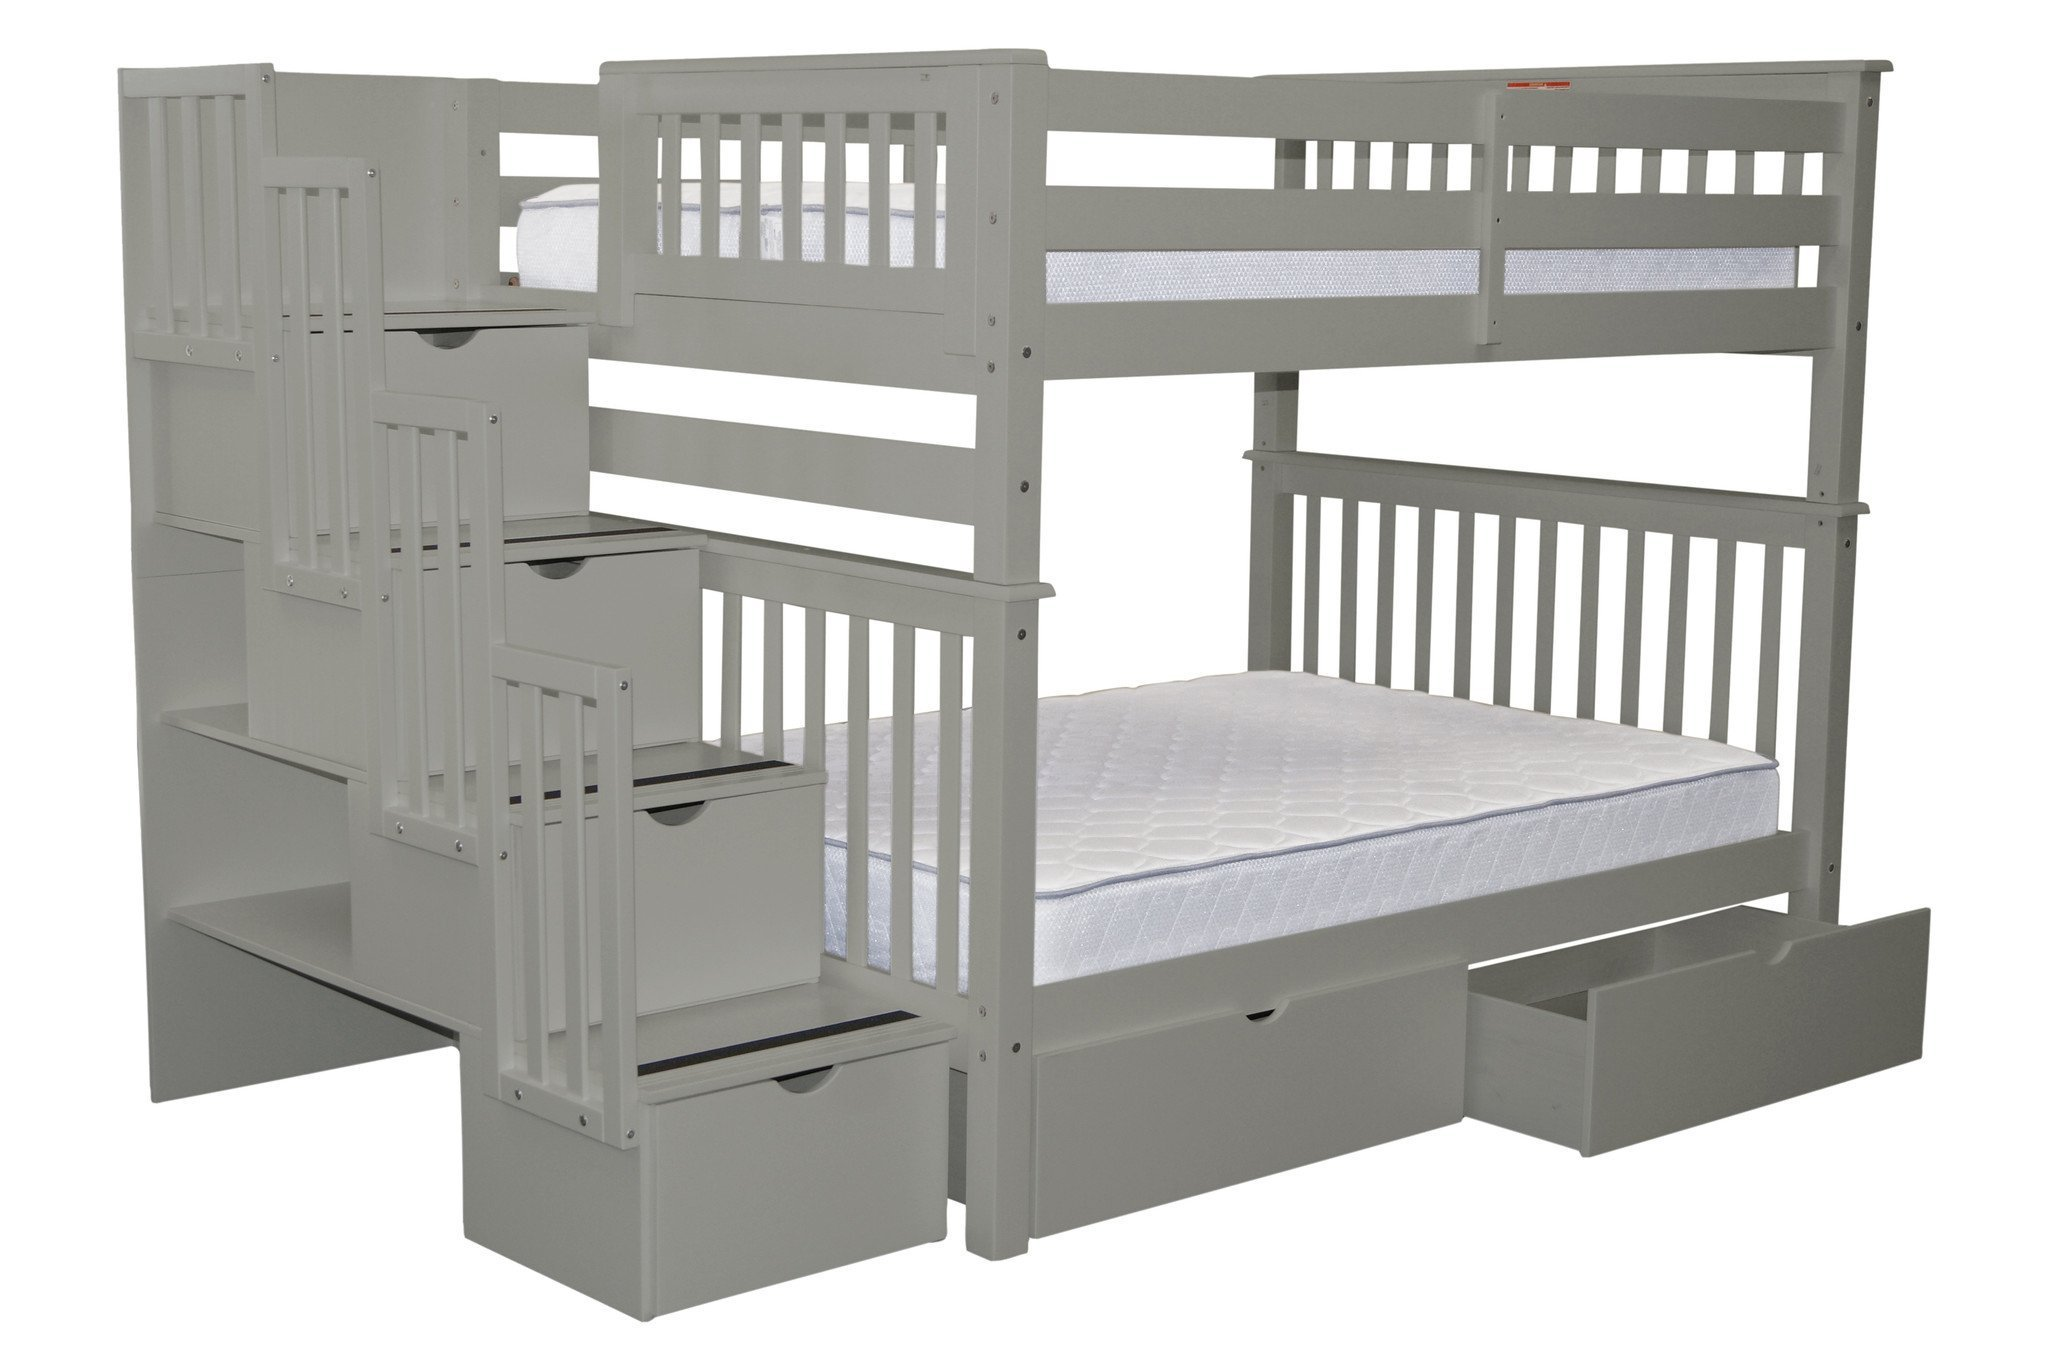 Bedz King Stairway Bunk Beds Full over Full with 4 Drawers in the Steps and 2 Under Bed Drawers, Gray by